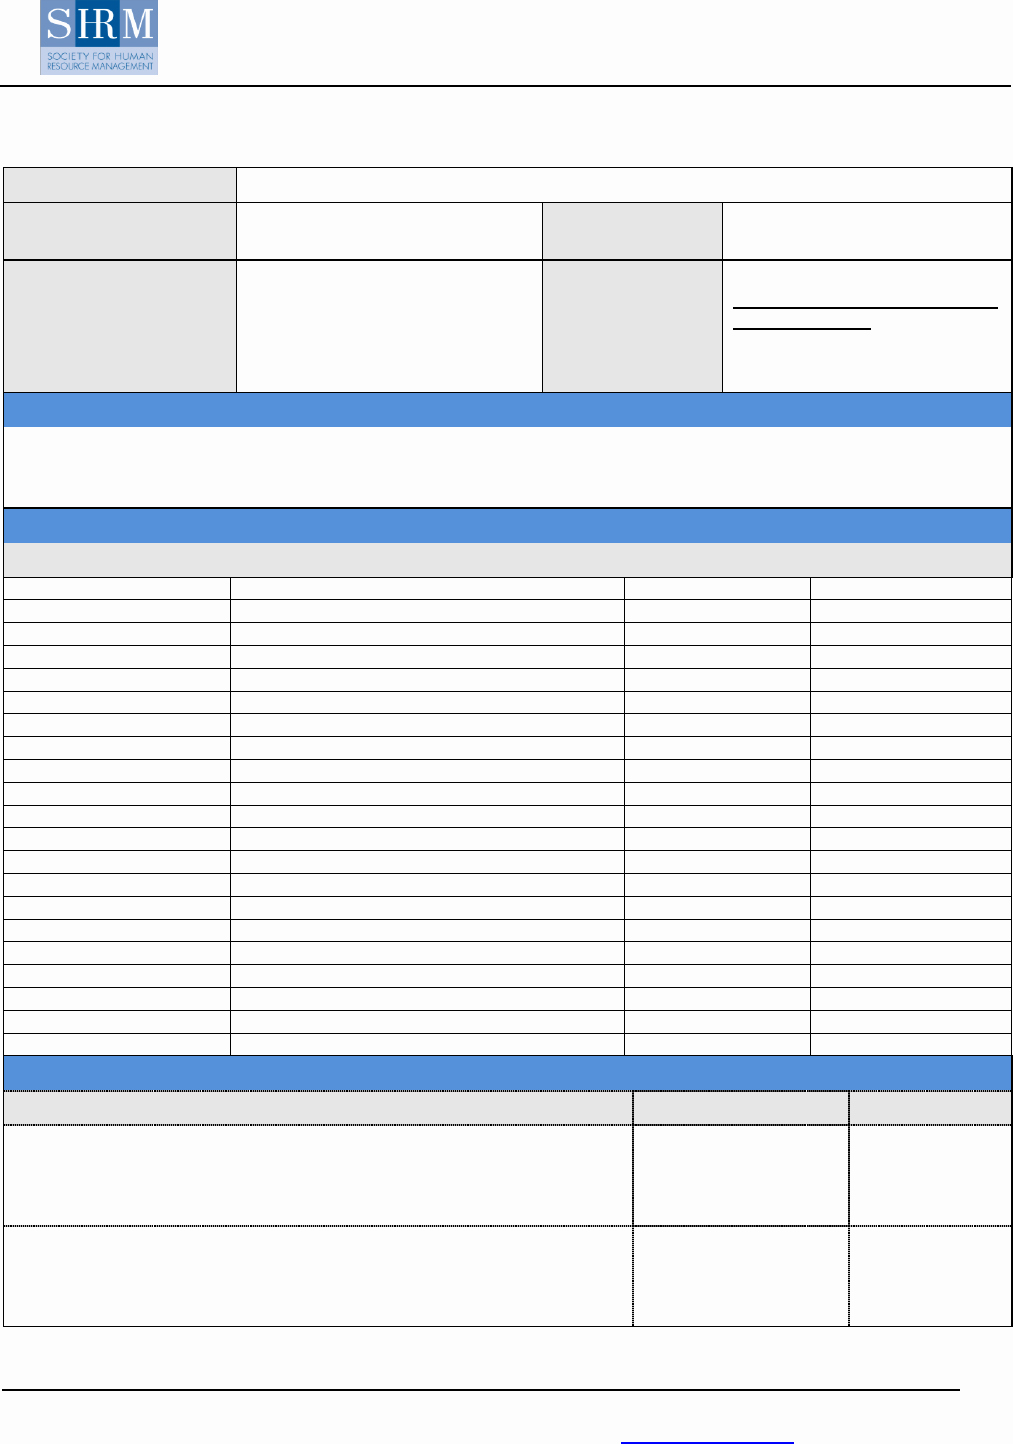 Project Meeting Minutes Template Unique Project Meeting Minutes Template In Word and Pdf formats